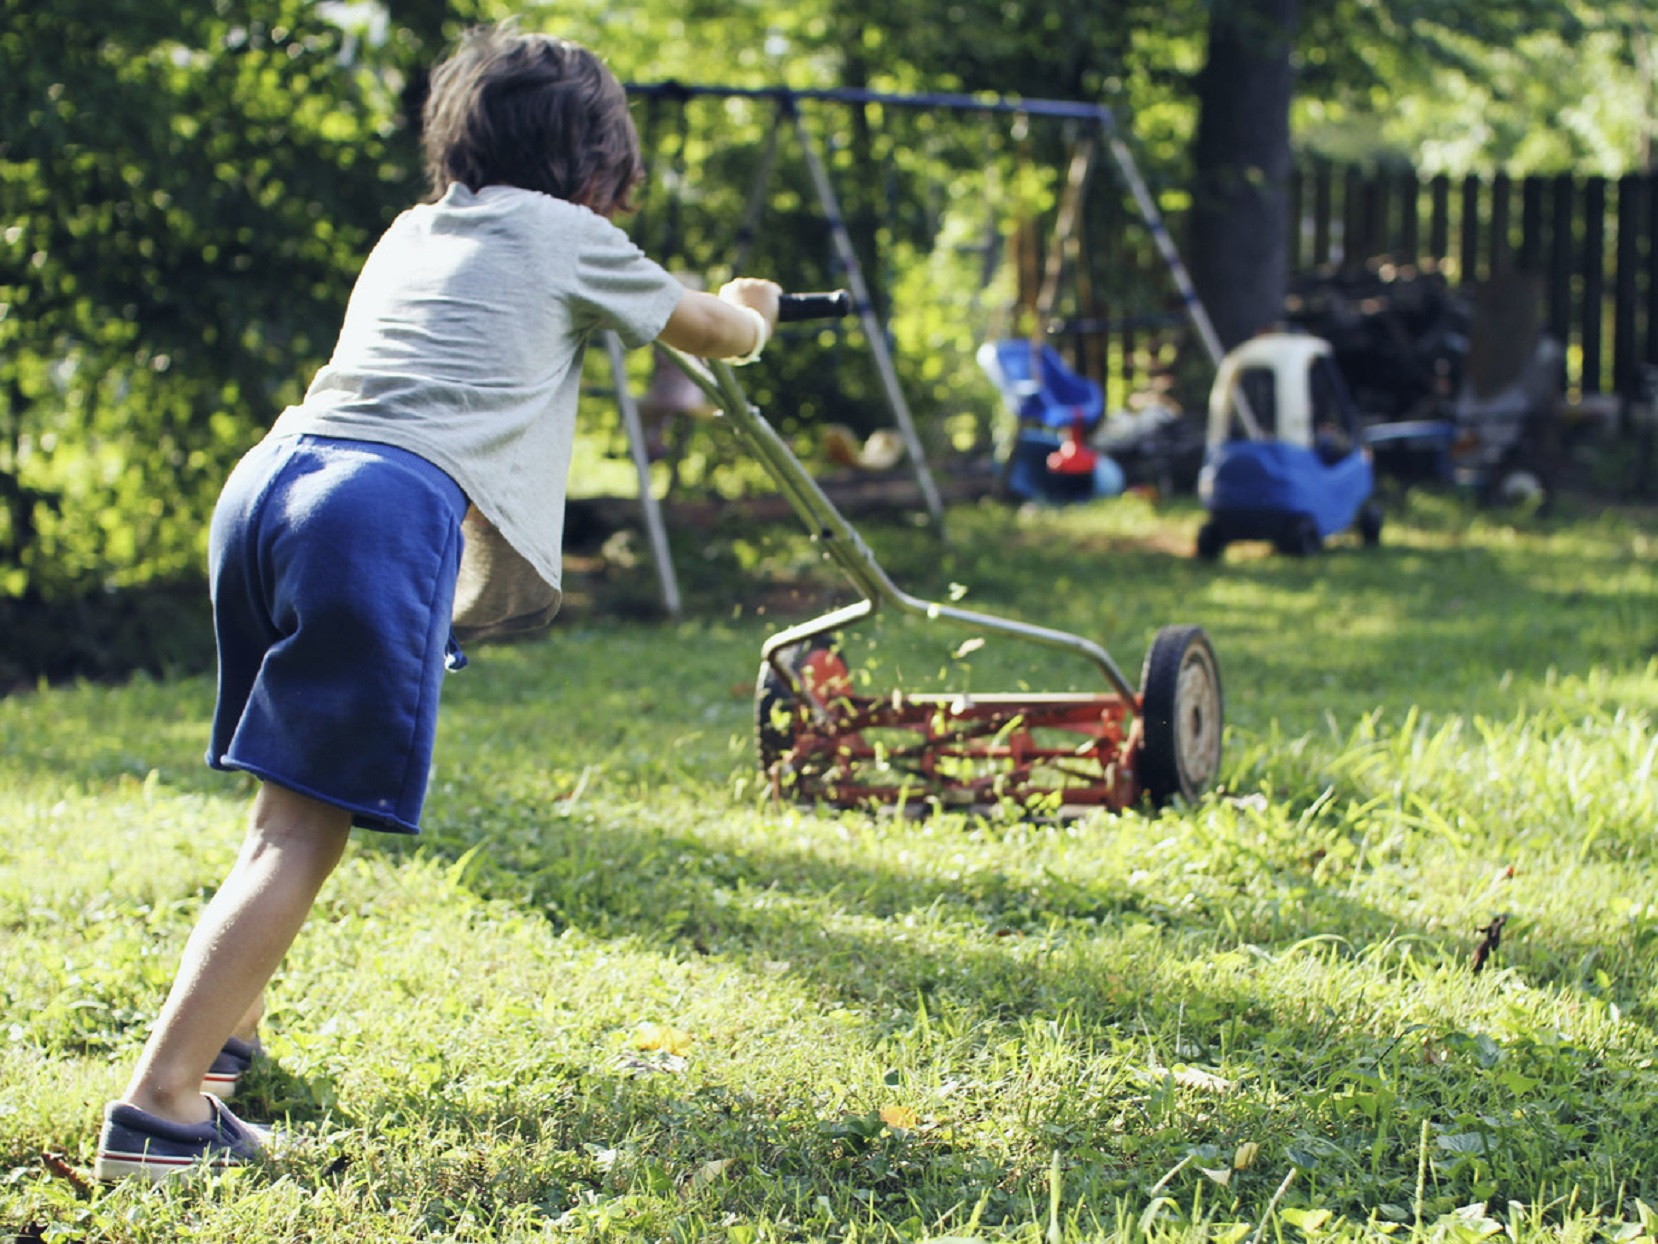 Blue Shorts Boy Mowing Lawn In Yard